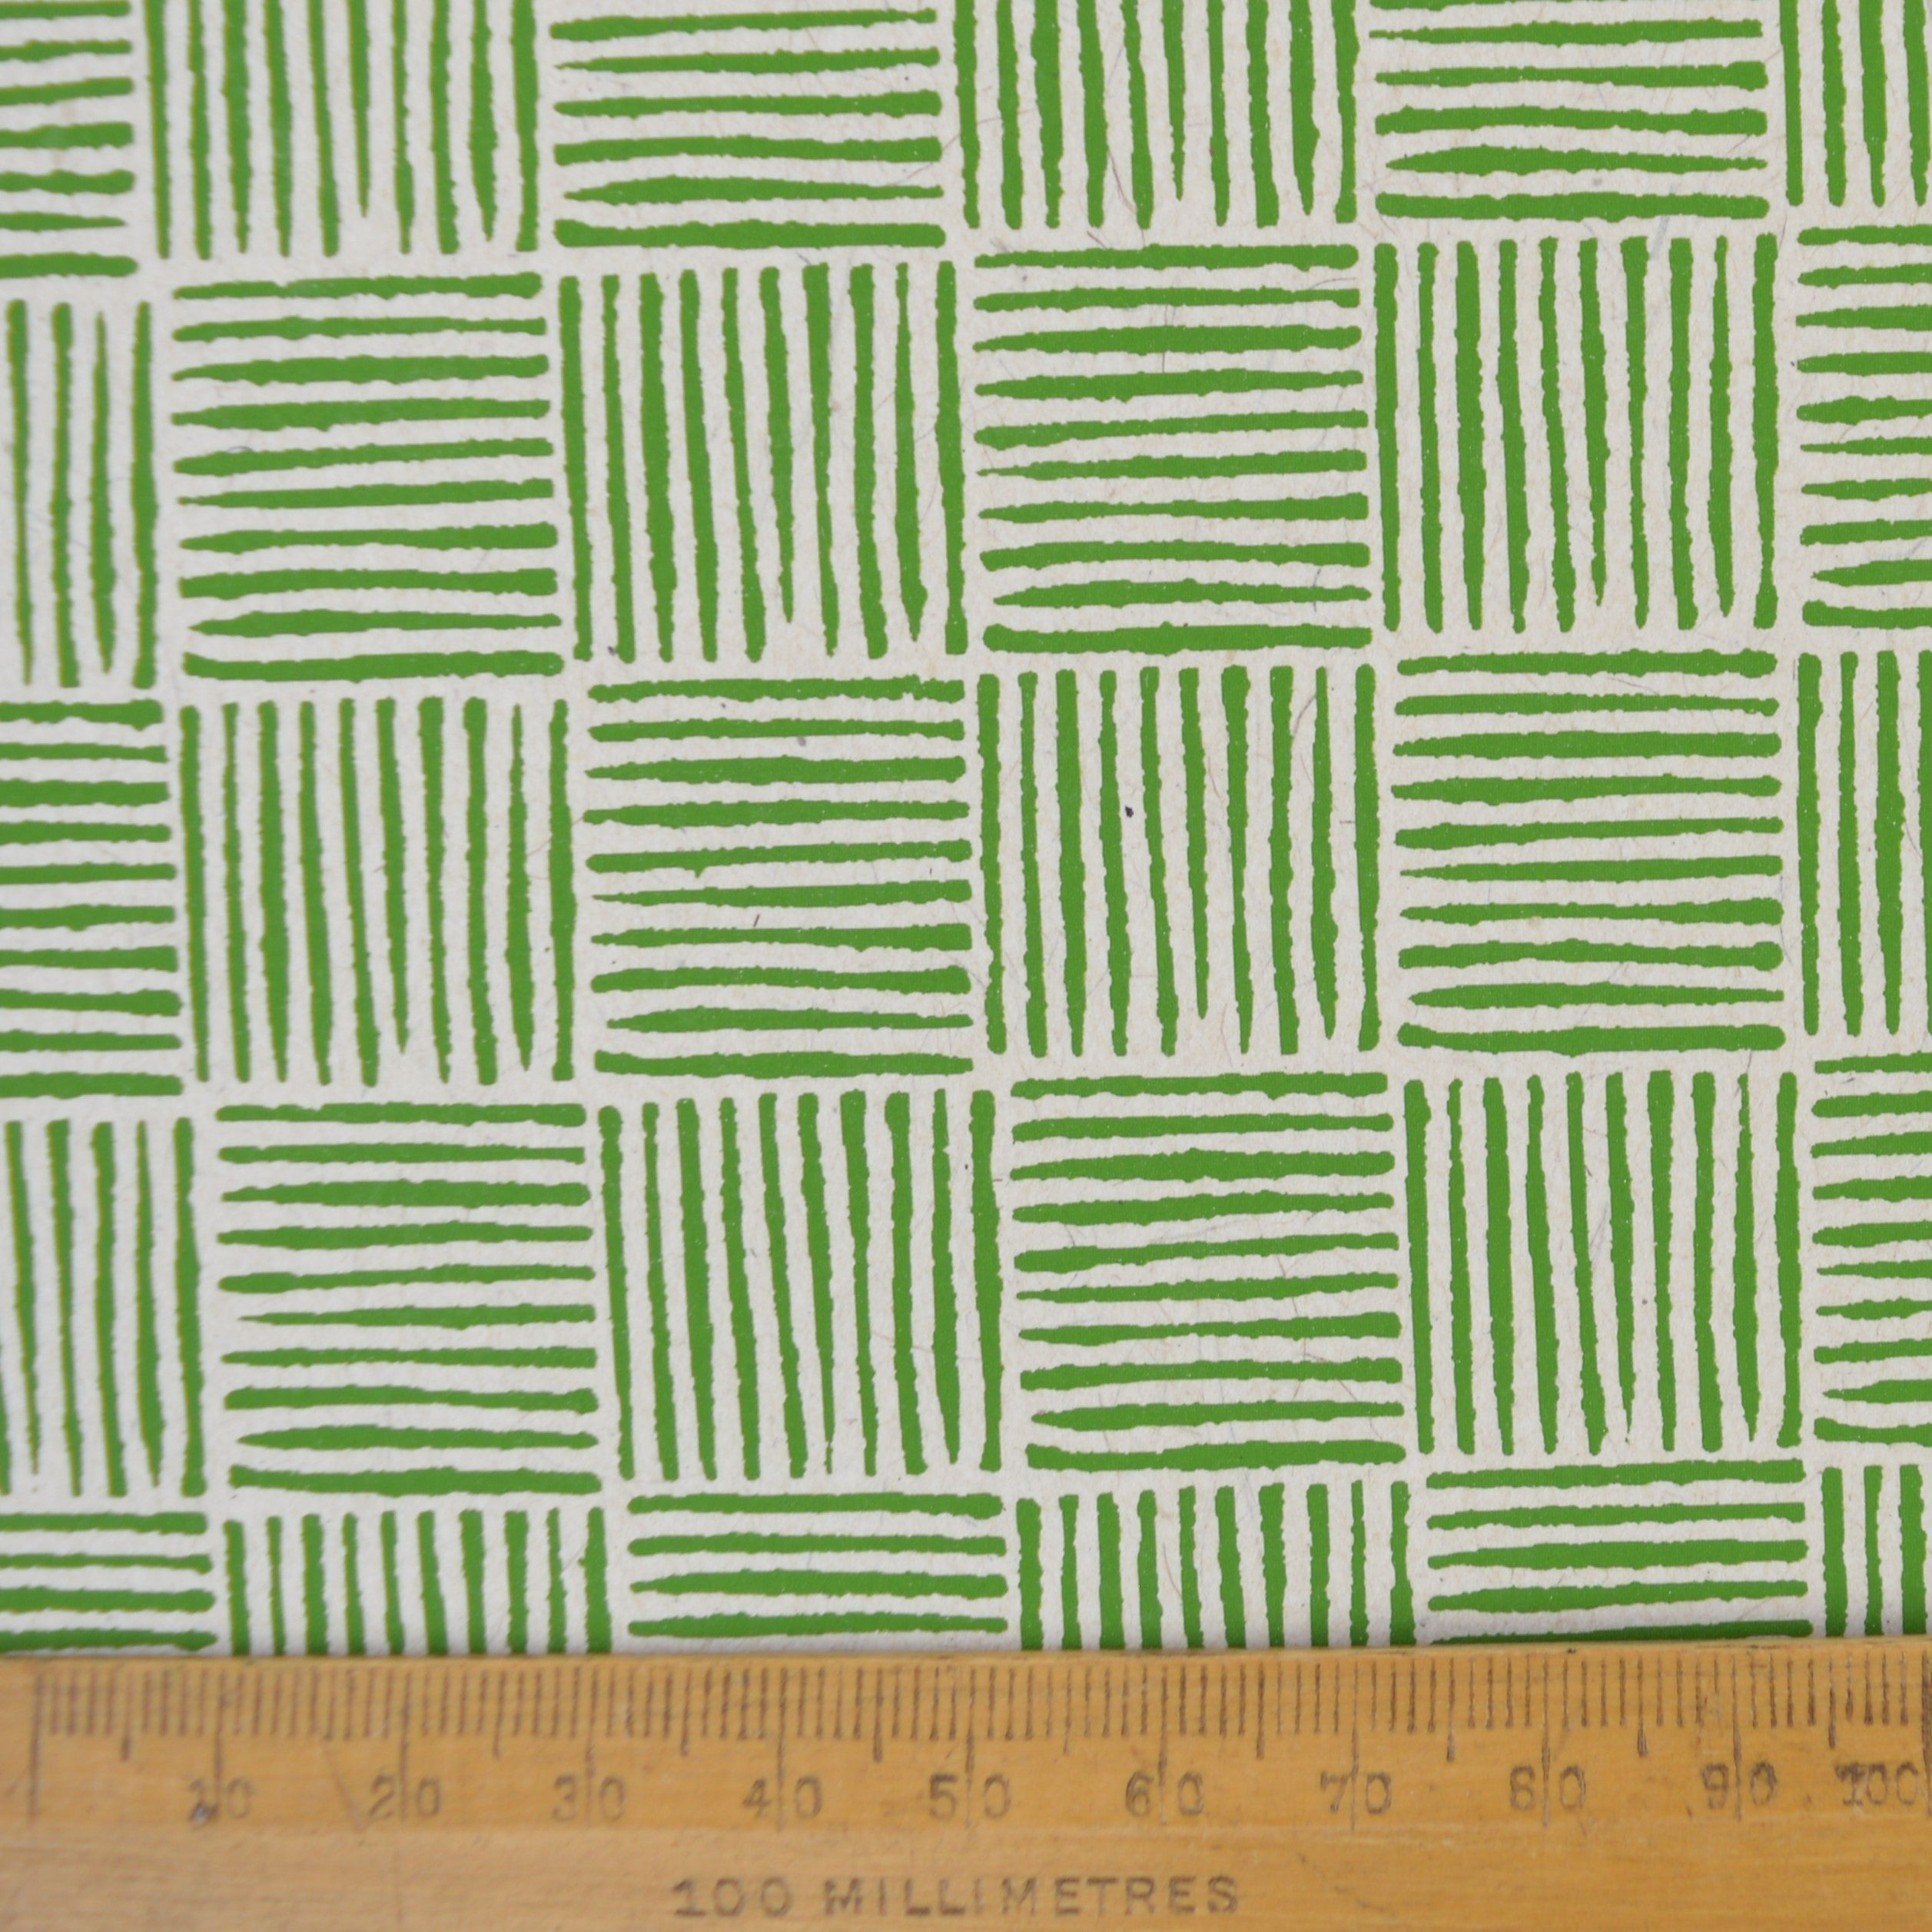 Munro and Kerr green hand printed paper for an empire lampshade